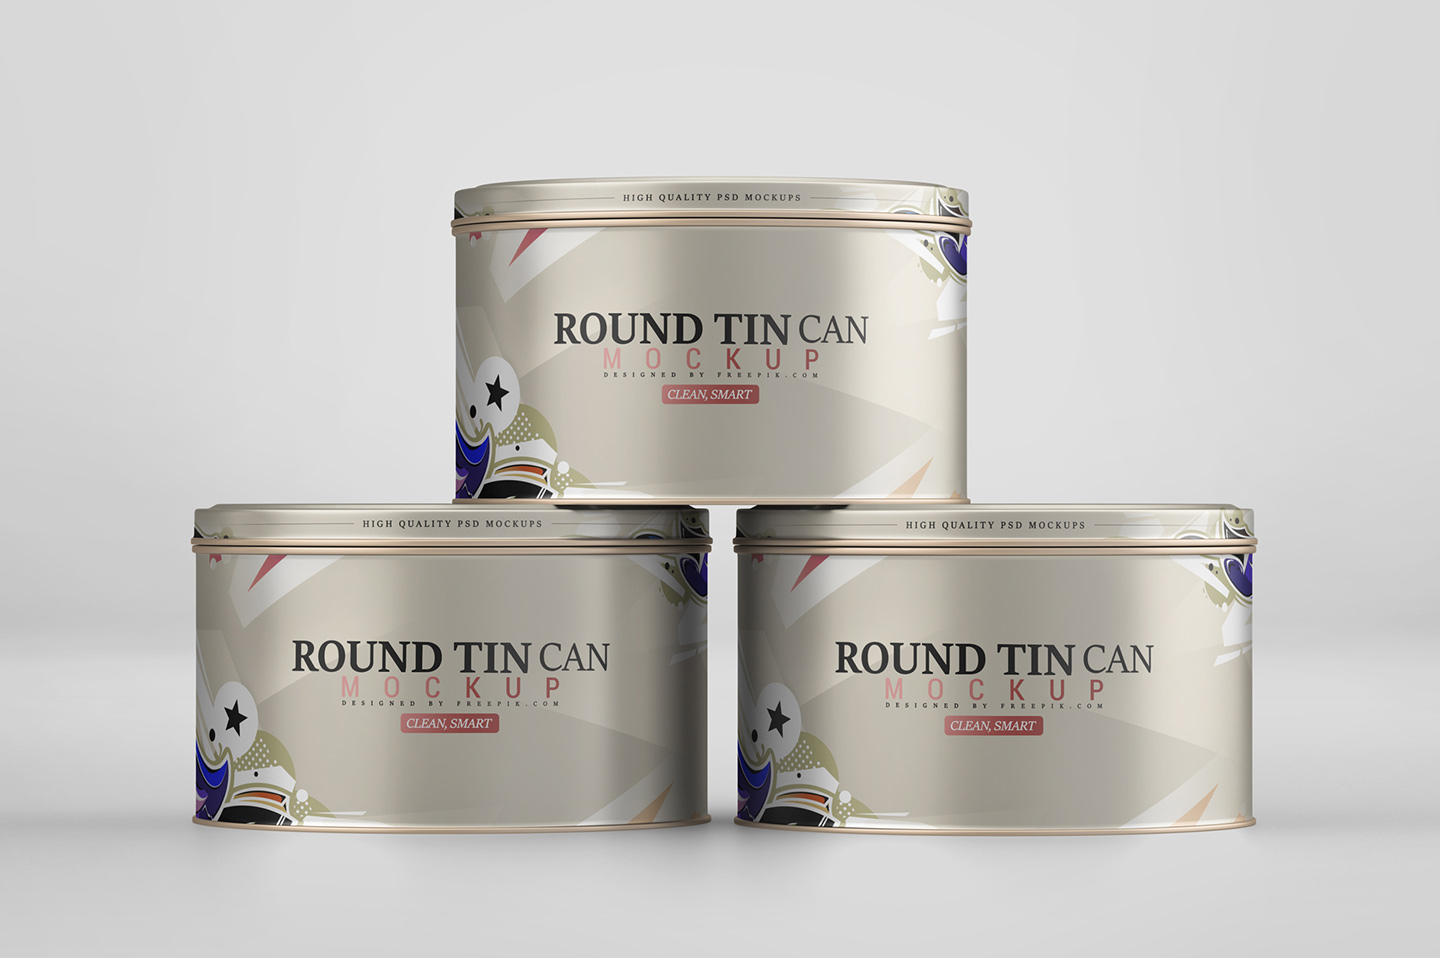 Round Tin Can Mockup example image 8